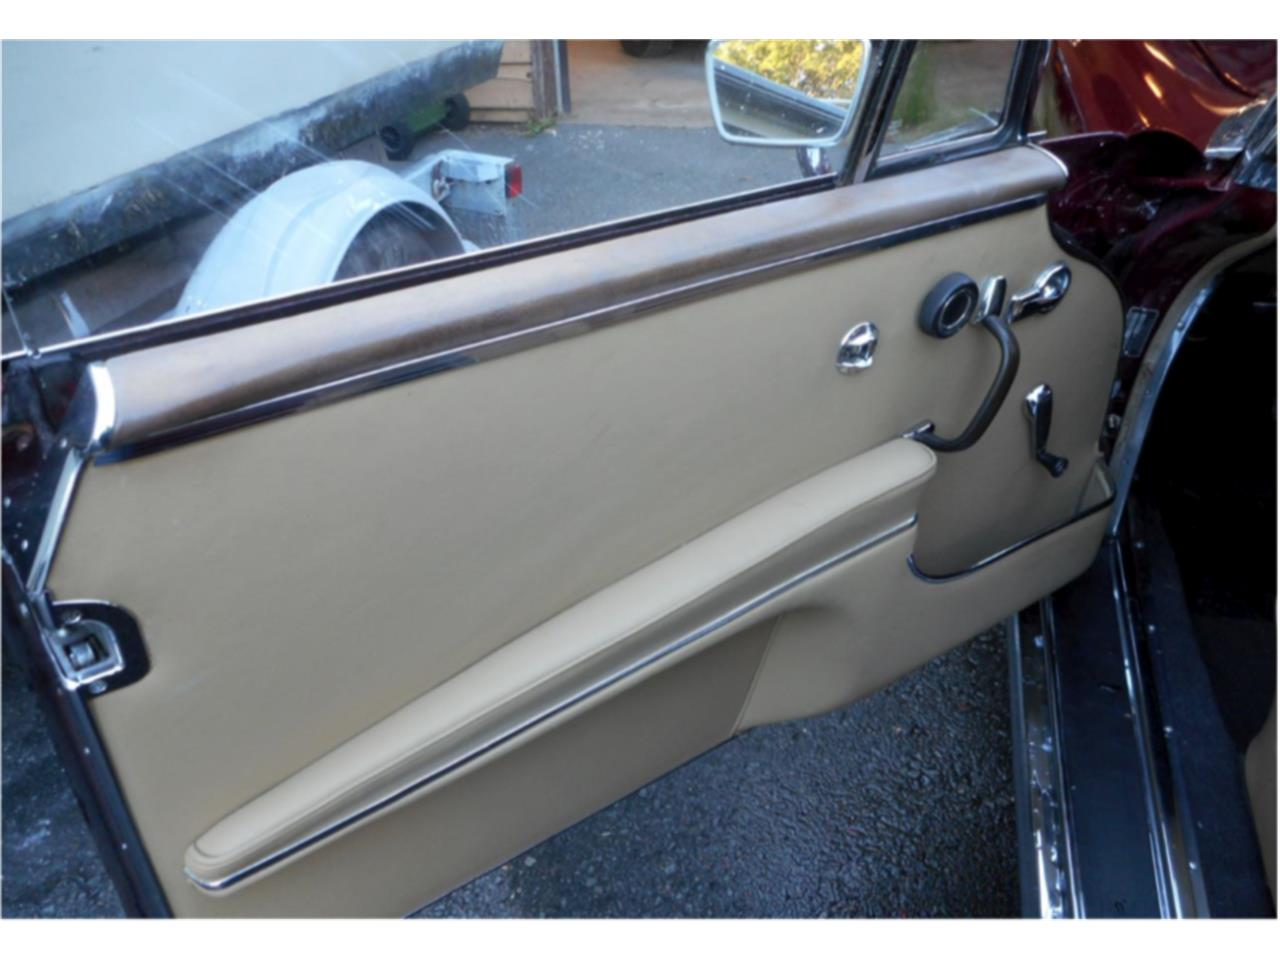 Large Picture of Classic 1961 Mercedes-Benz 220SEb located in Halifax Nova Scotia - $73,000.00 Offered by a Private Seller - N9W8